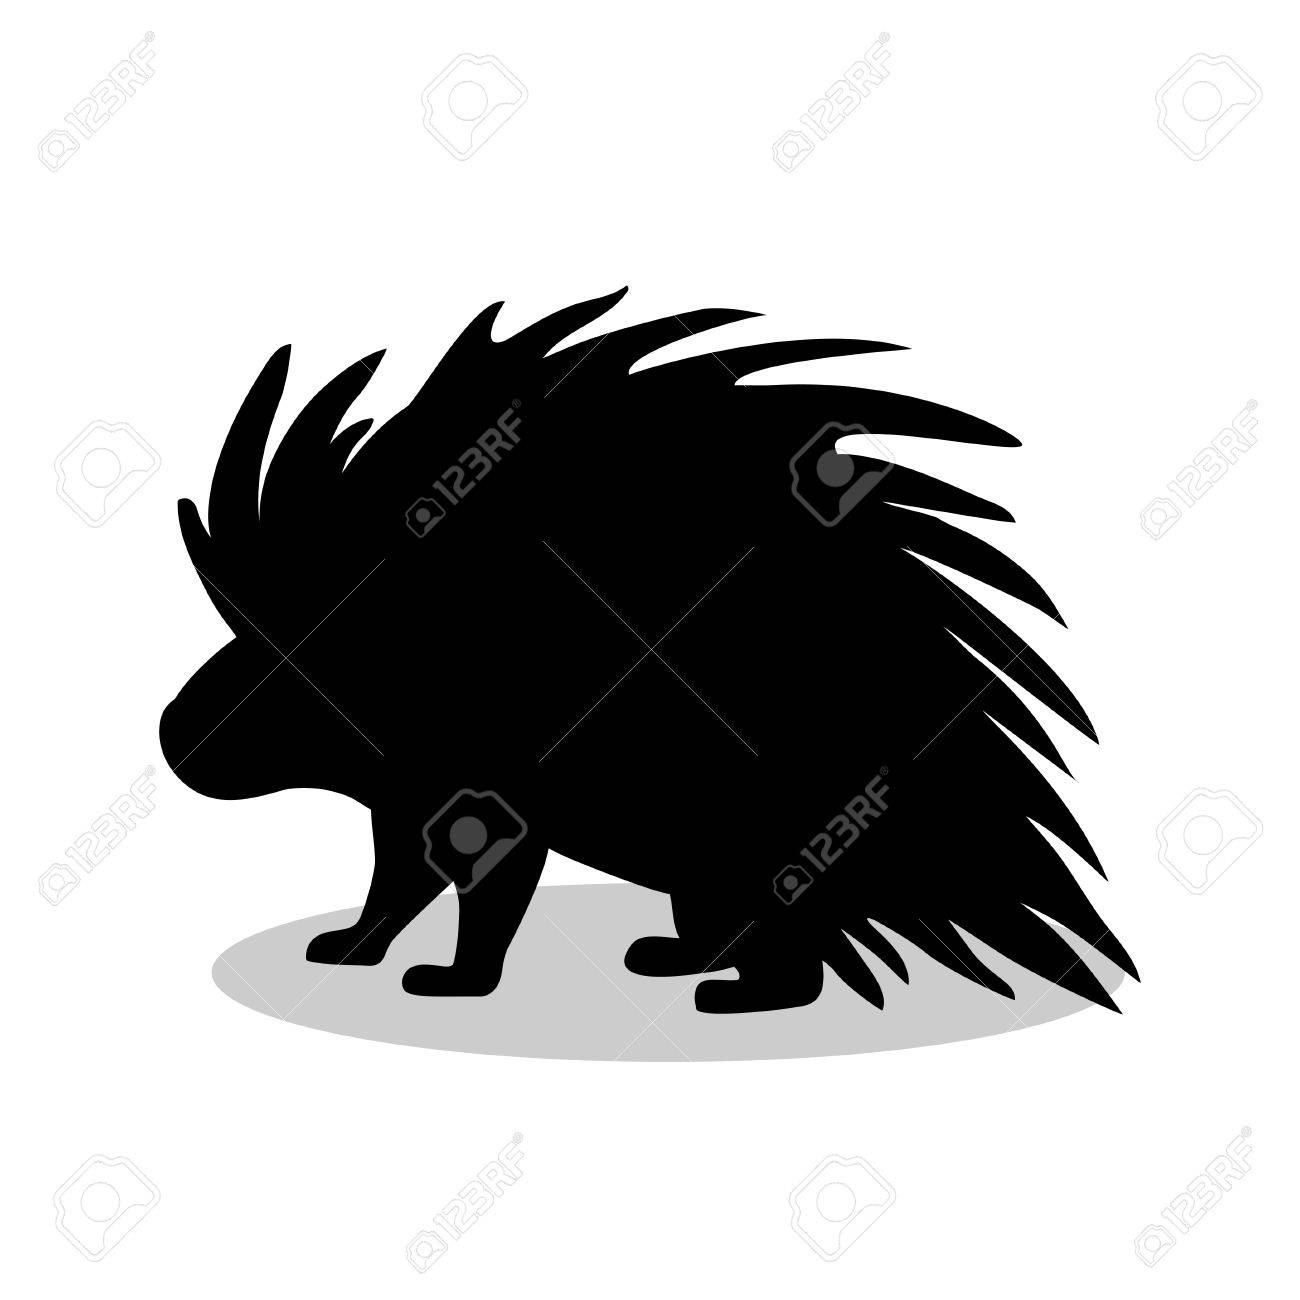 hight resolution of porcupine rodent mammal black silhouette animal stock vector 77736747